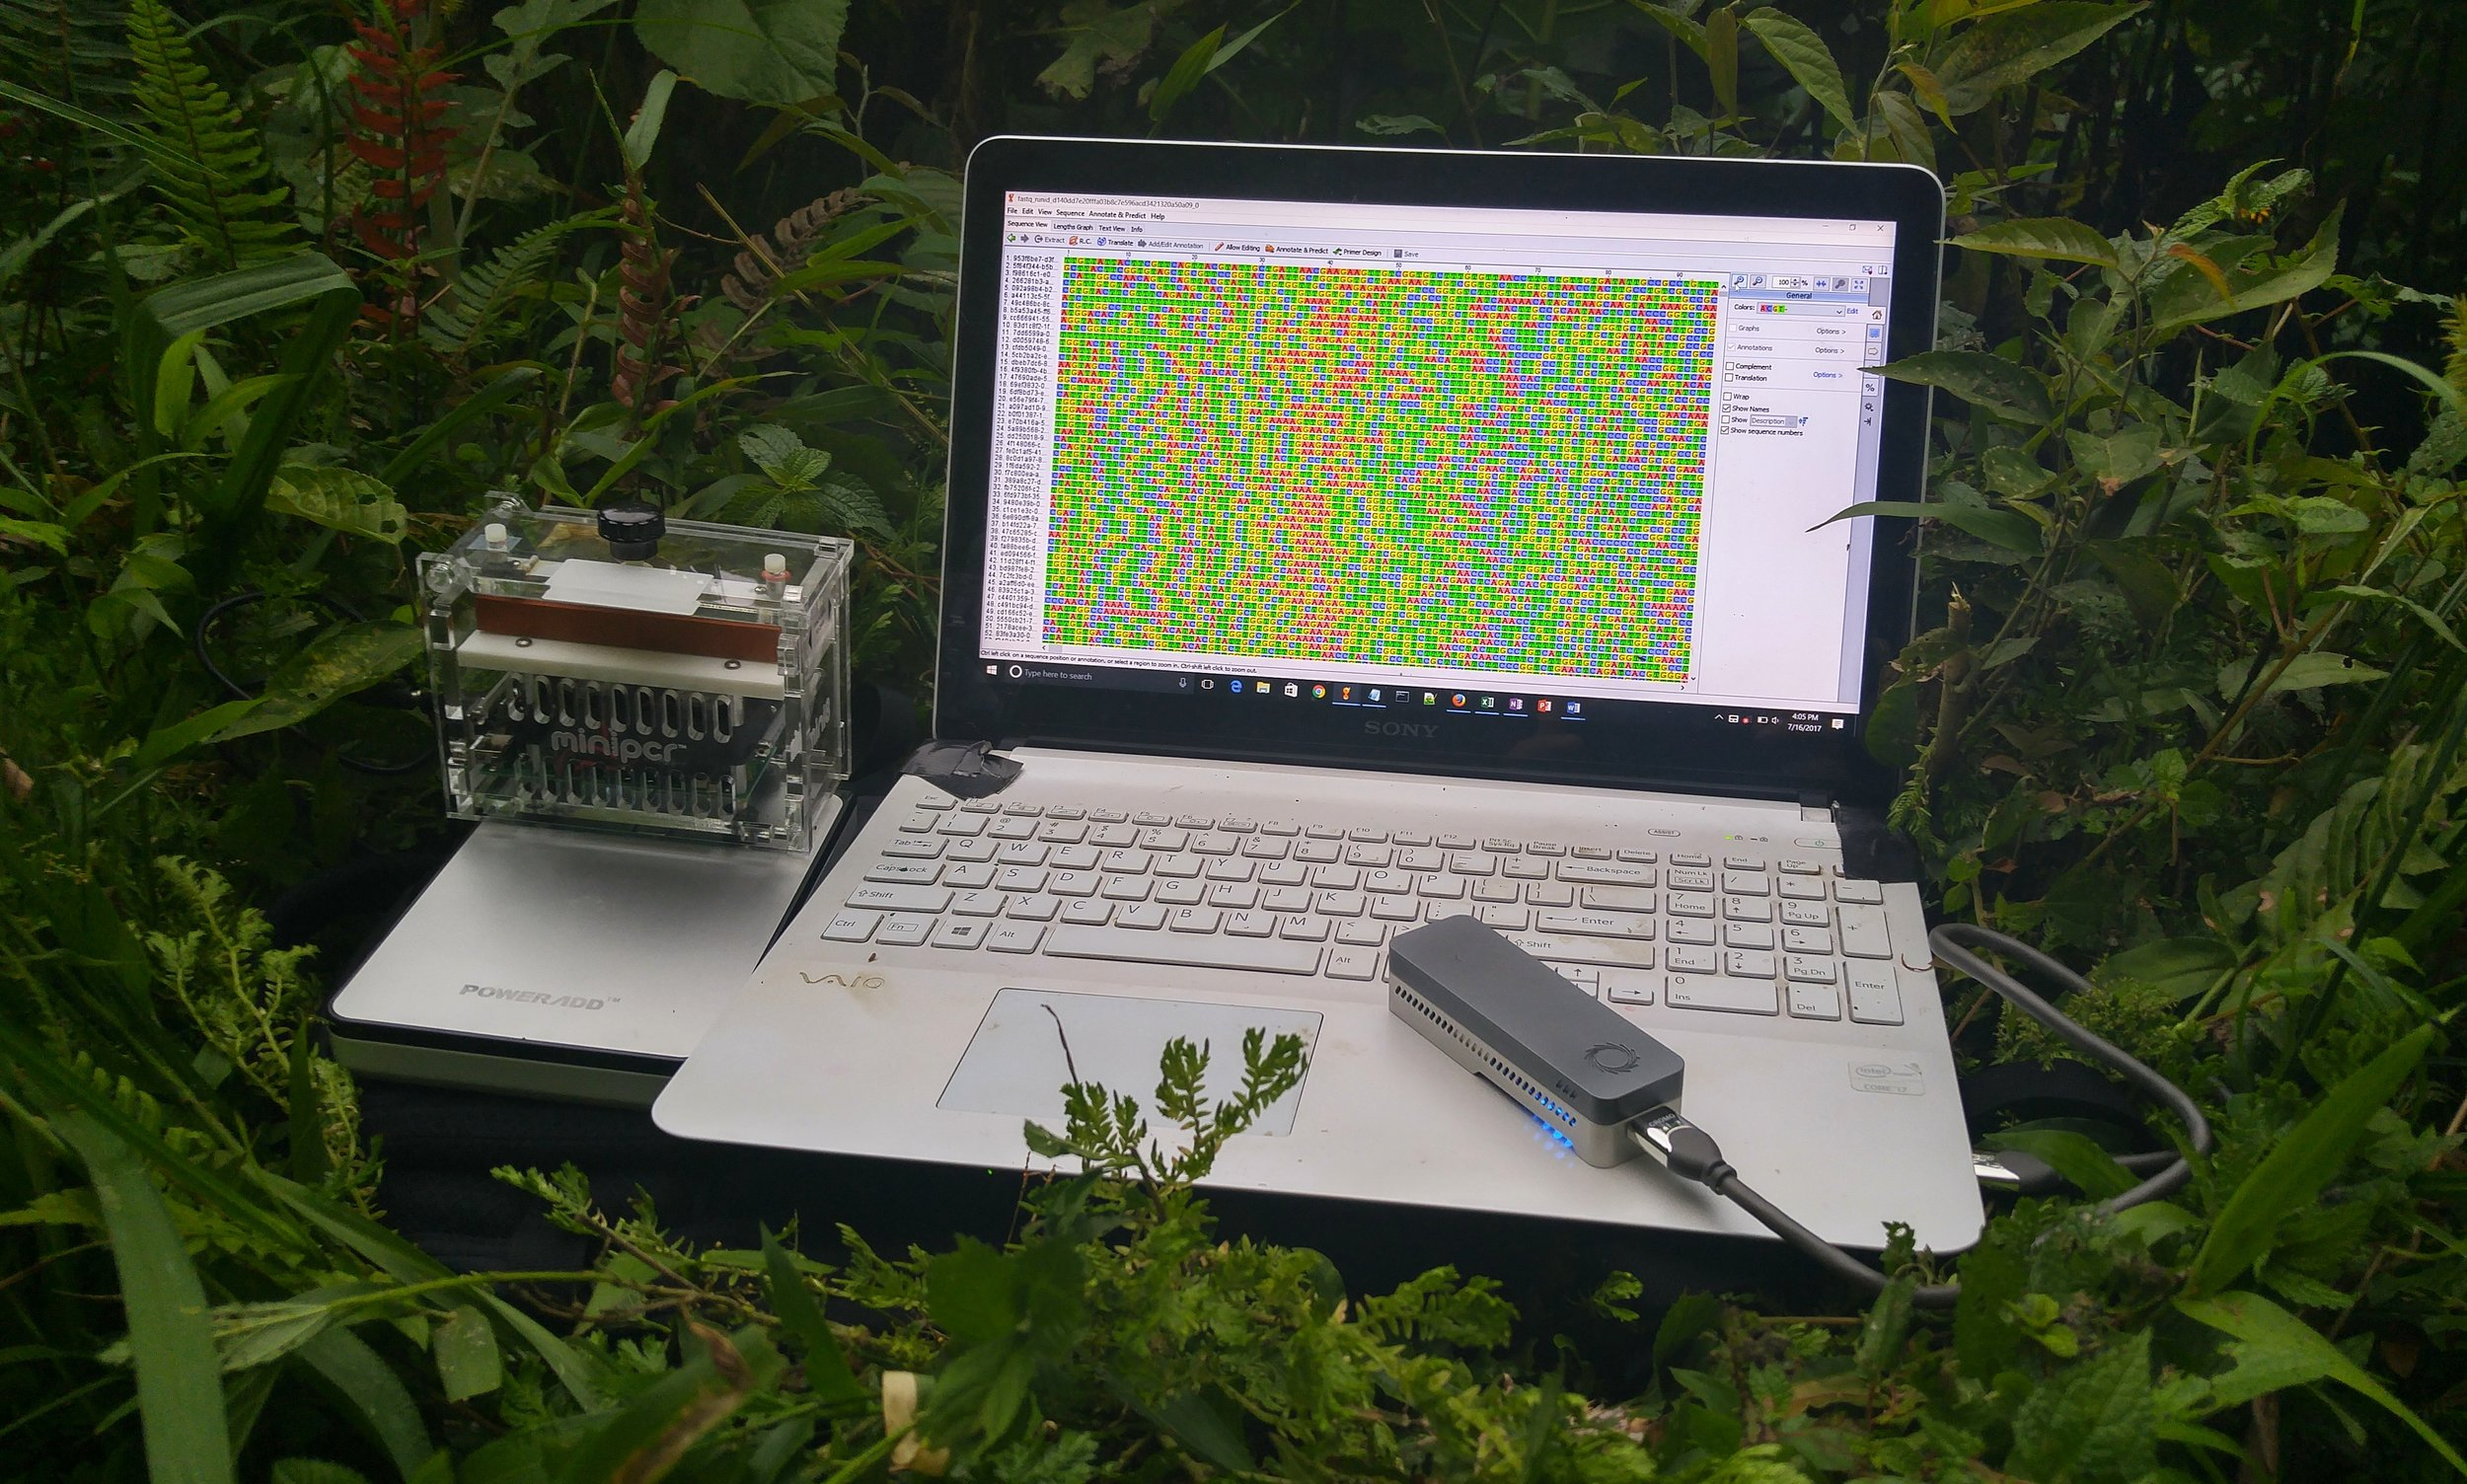 Components of the portable lab used on the trip. Left to right: miniPCR sitting atop the Poweradd battery, Vaio laptop with Geneious pro software to visualize sequence data, and the ONT MinION sequencer powered by the laptop.